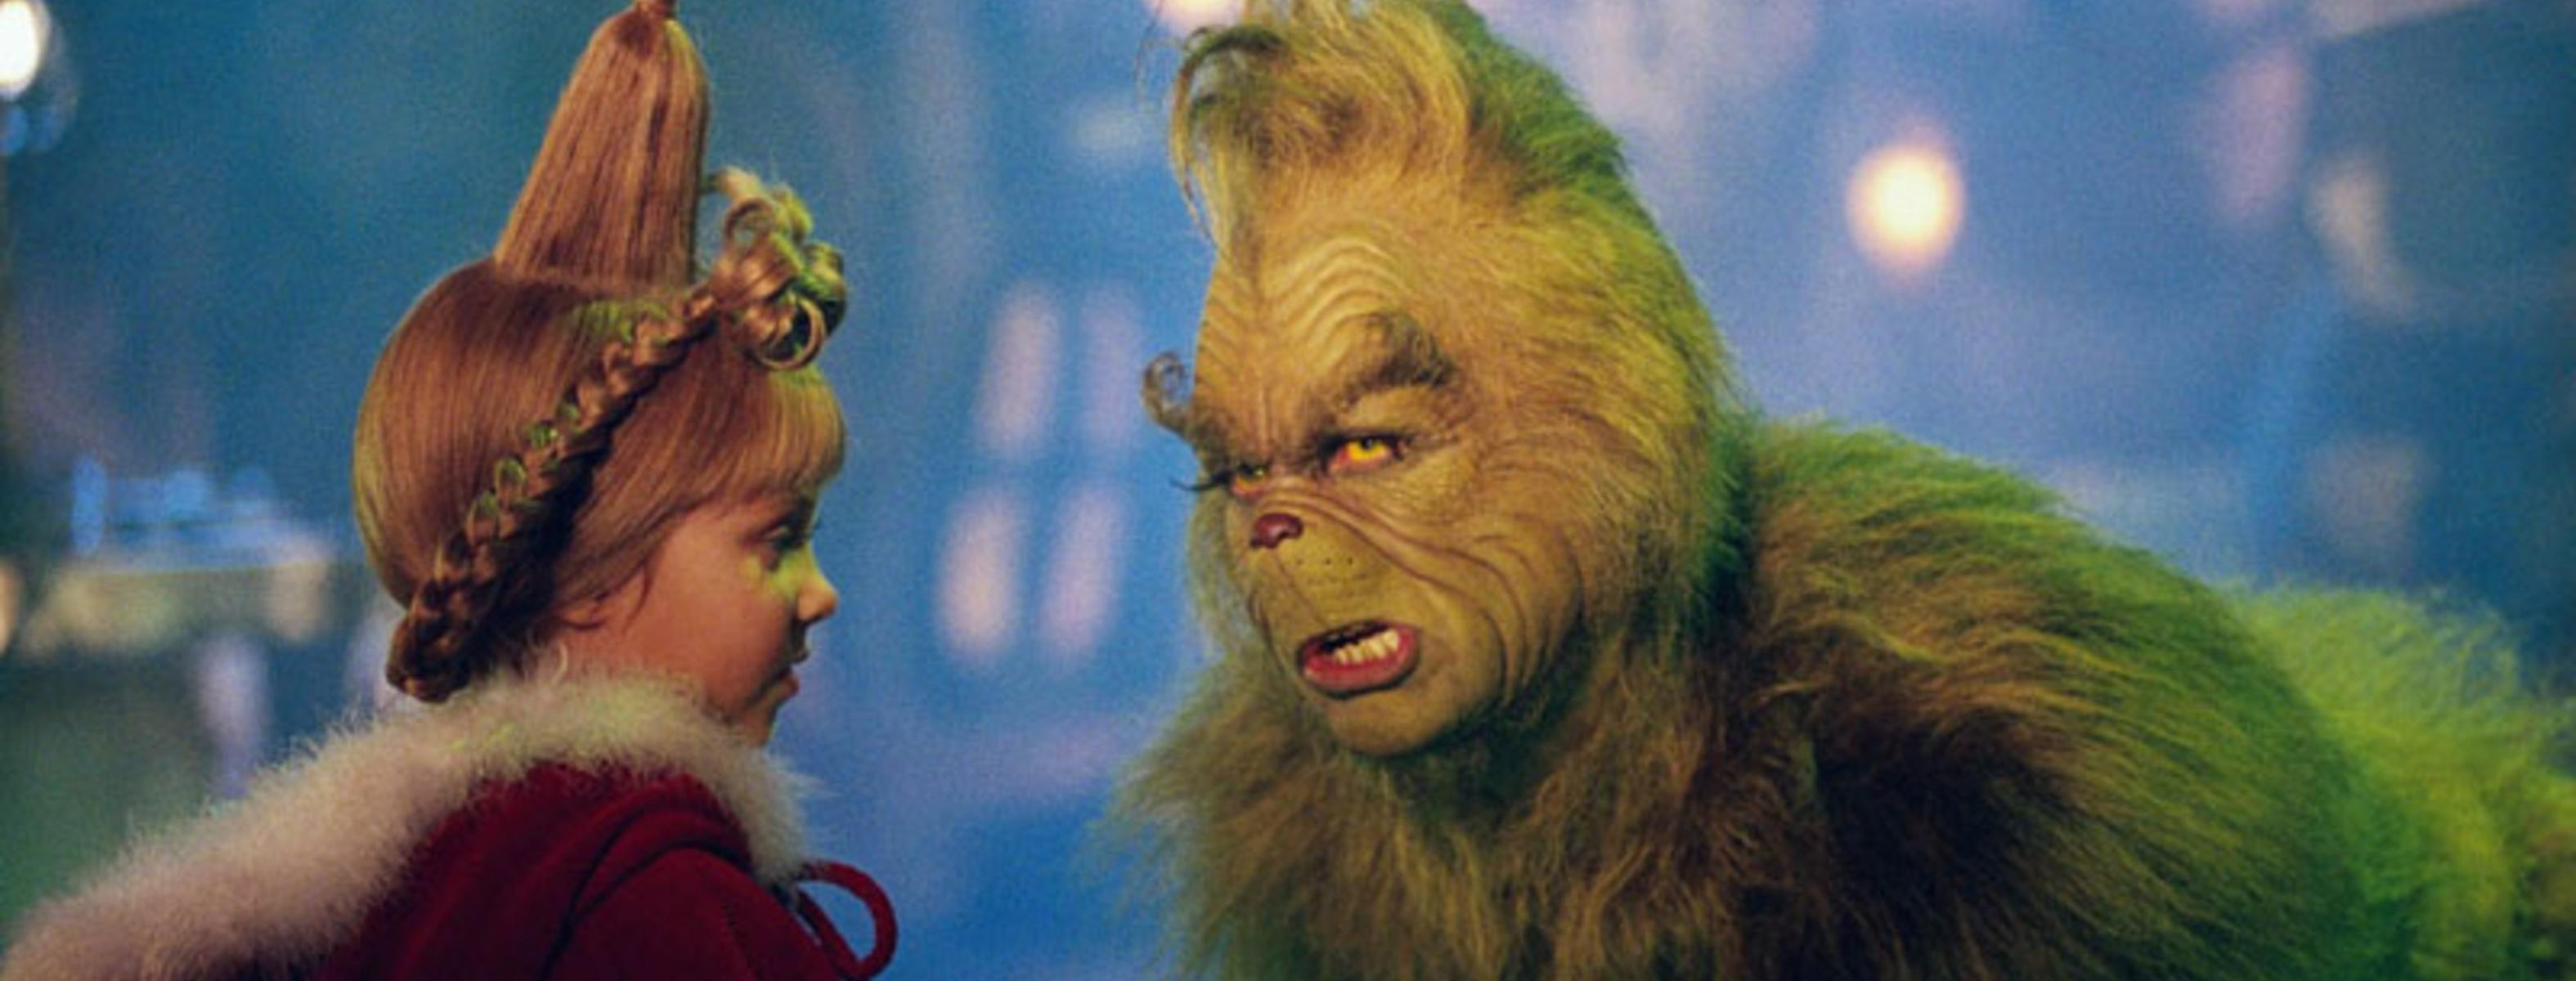 The Grinch Who Stole Christmas Cast.Now Casting Play Cindy Lou Who And Others In Dr Seuss